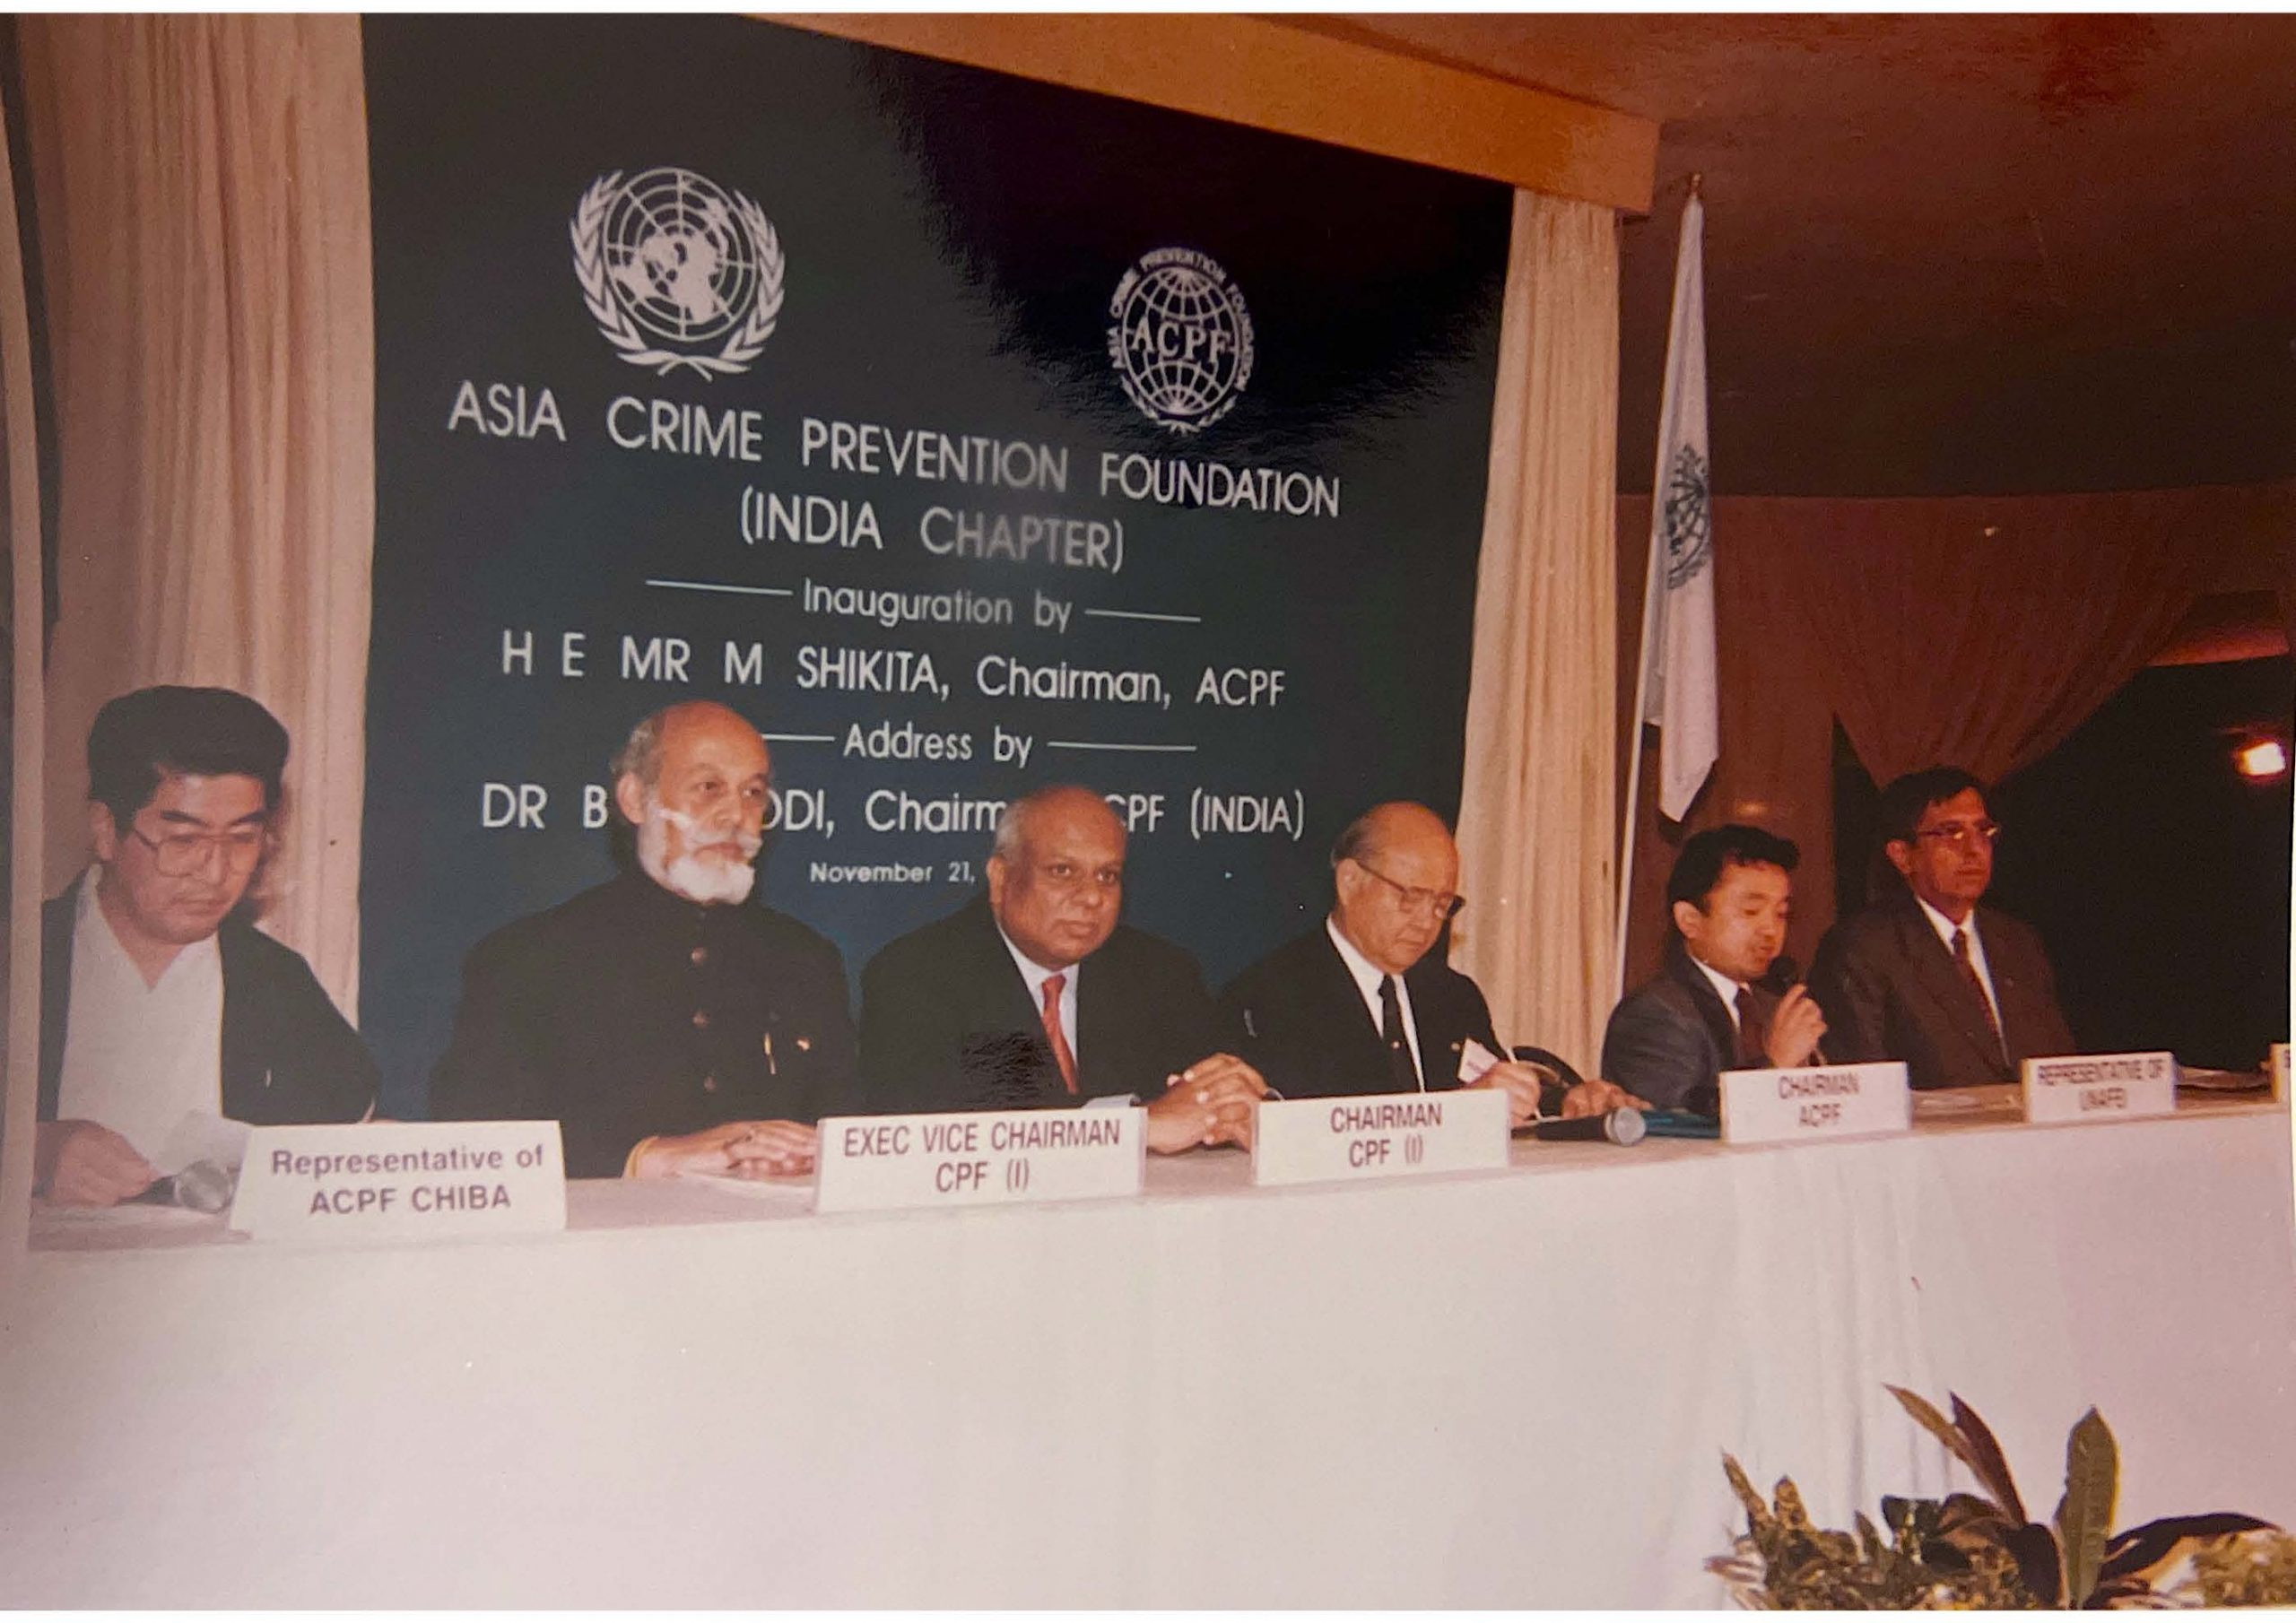 Dr. M as as Chairman of Asia Crime Prevention Foundation